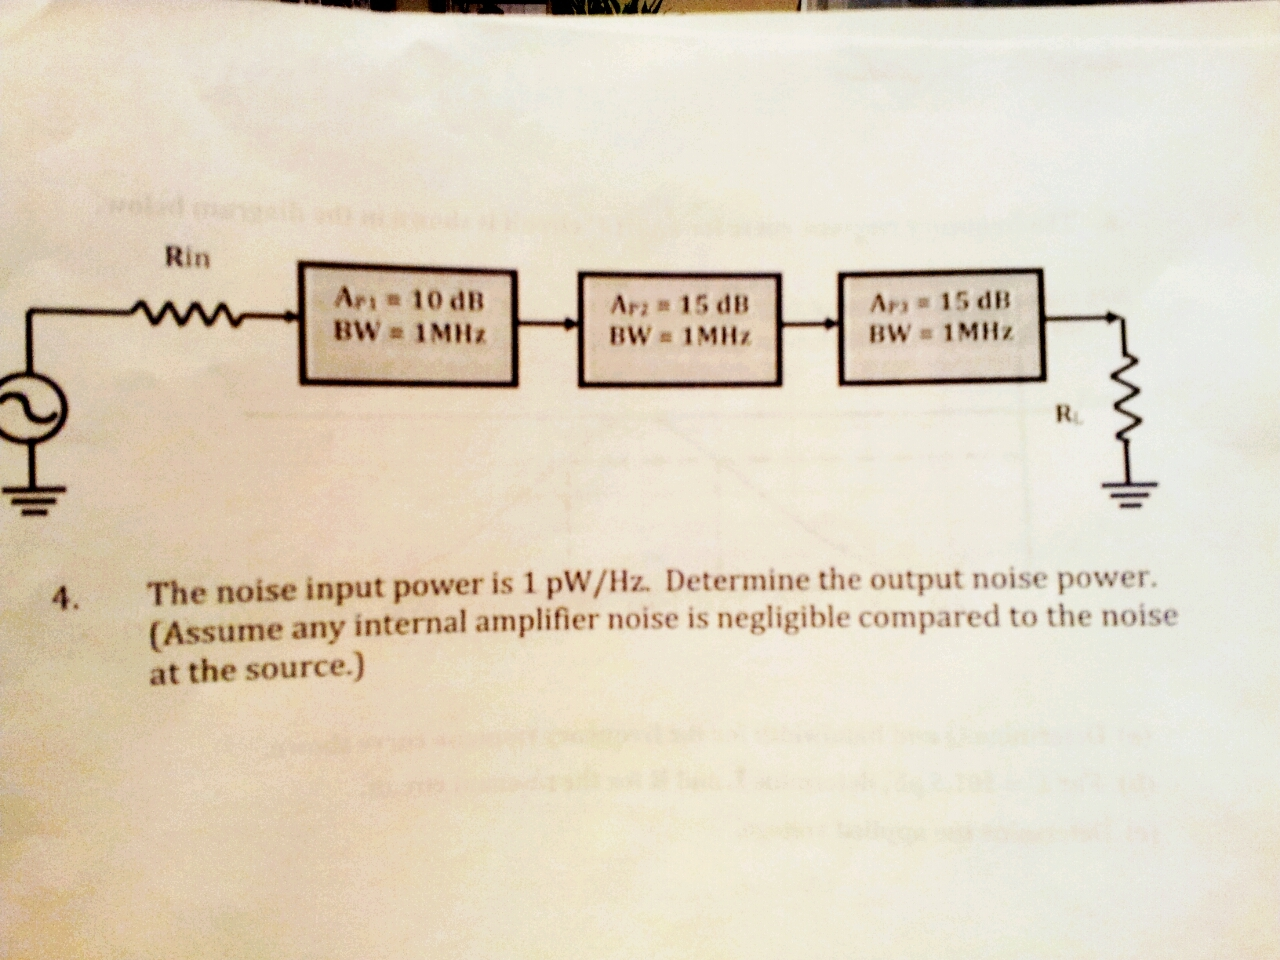 THE NOISE INP 1pW/Hz. DETERMINE THE OUTPUT NOISE P